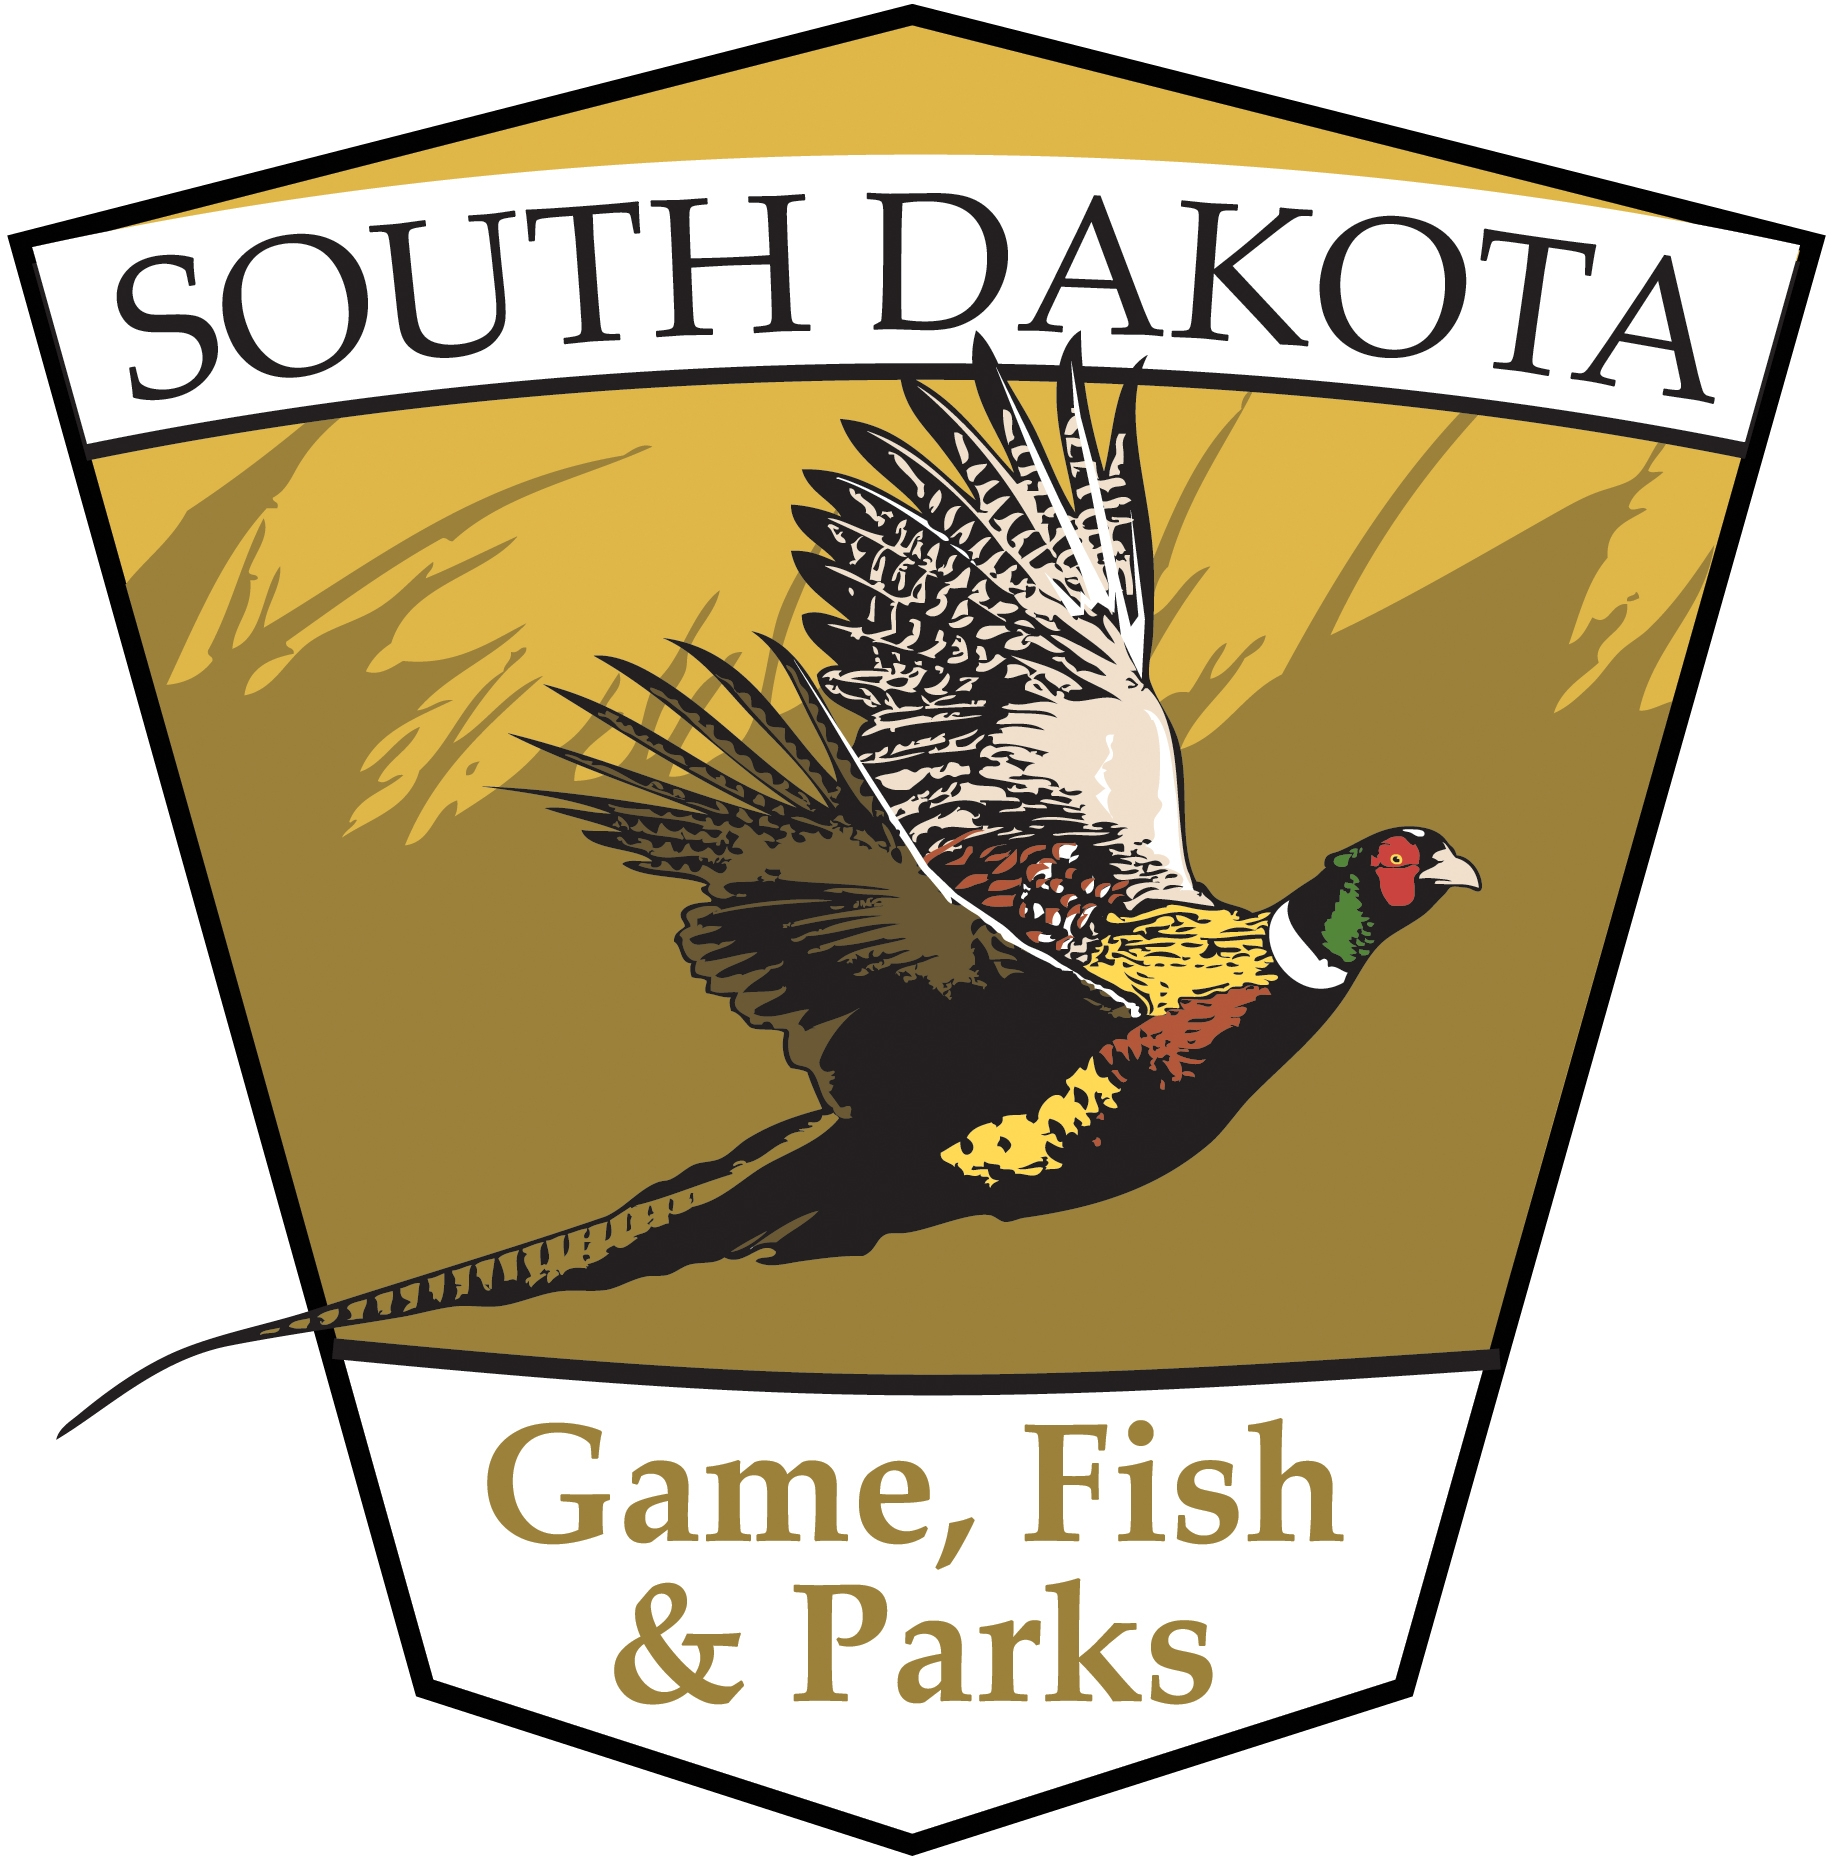 South dakota game fish and parks seasonal employment for Fish and game jobs